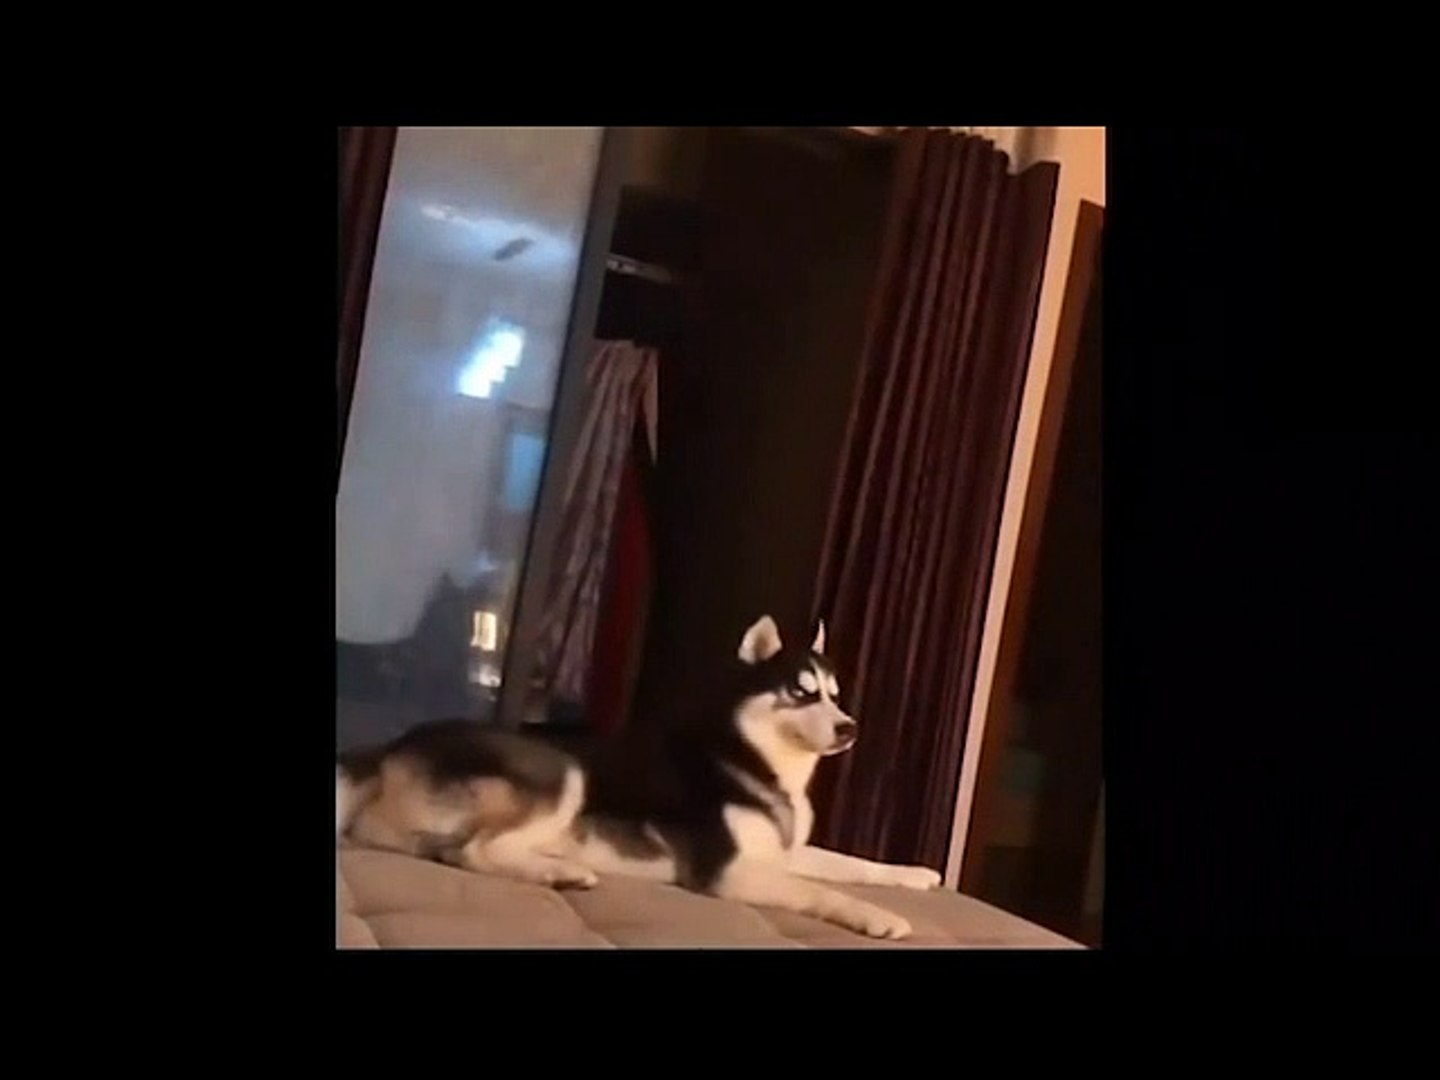 Cute animals Videos Compilation cute moment#2